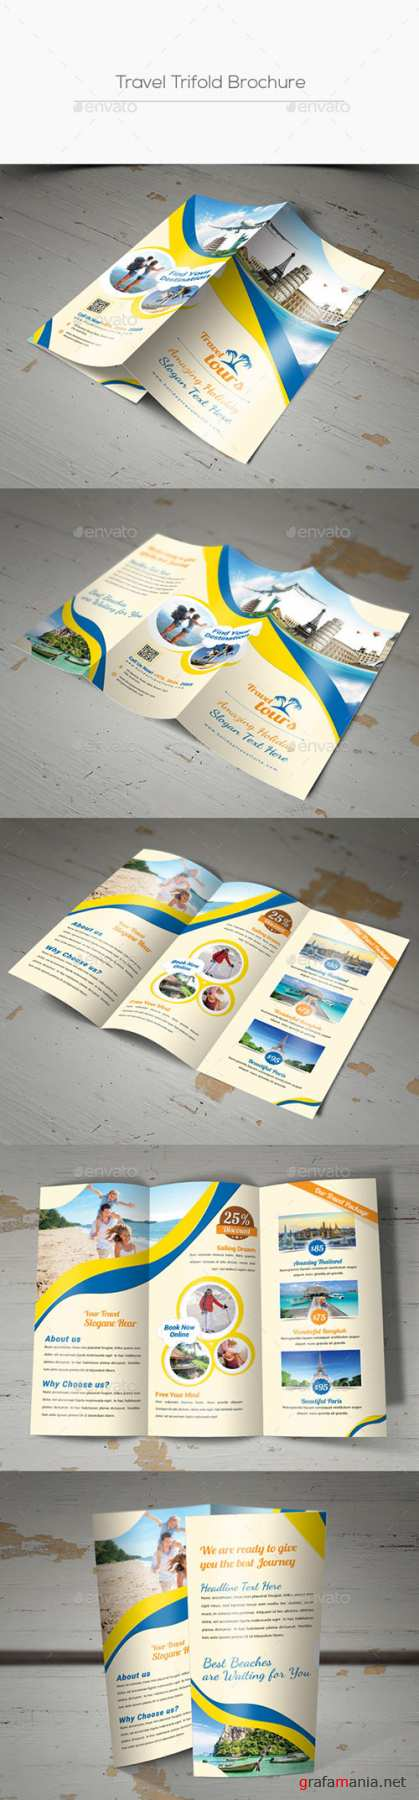 Travel Trifold Brochure 22598407